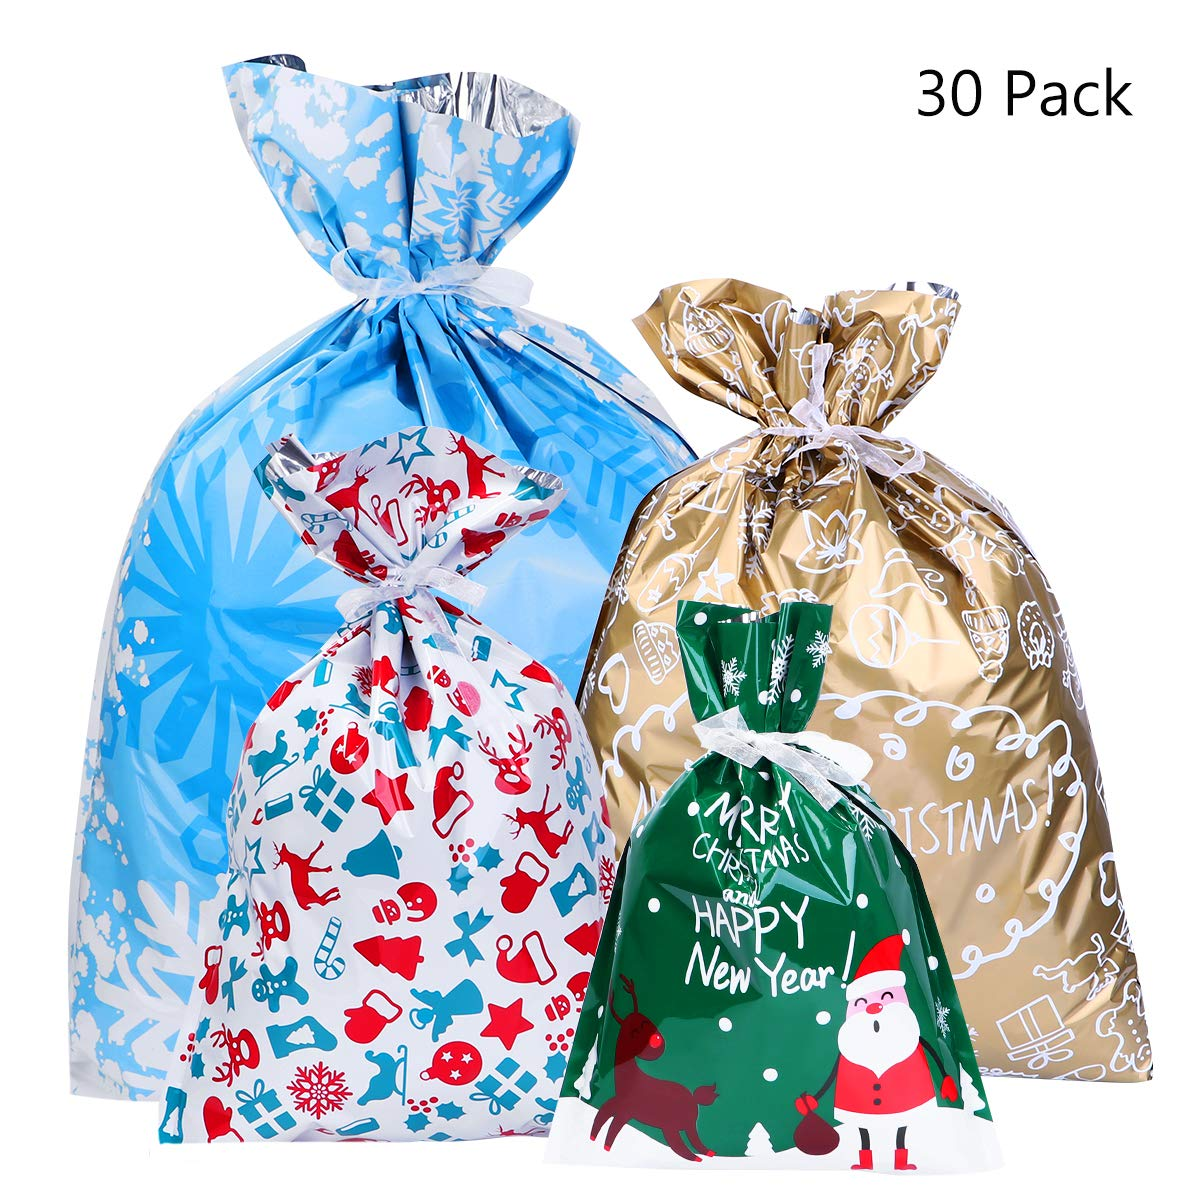 Christmas Gift Bags Australia.Bestoyard 30pcs Christmas Gift Bag Christmas Goody Bags Gift Wrapping Assorted Styles With 30pcs Ribbon Ties